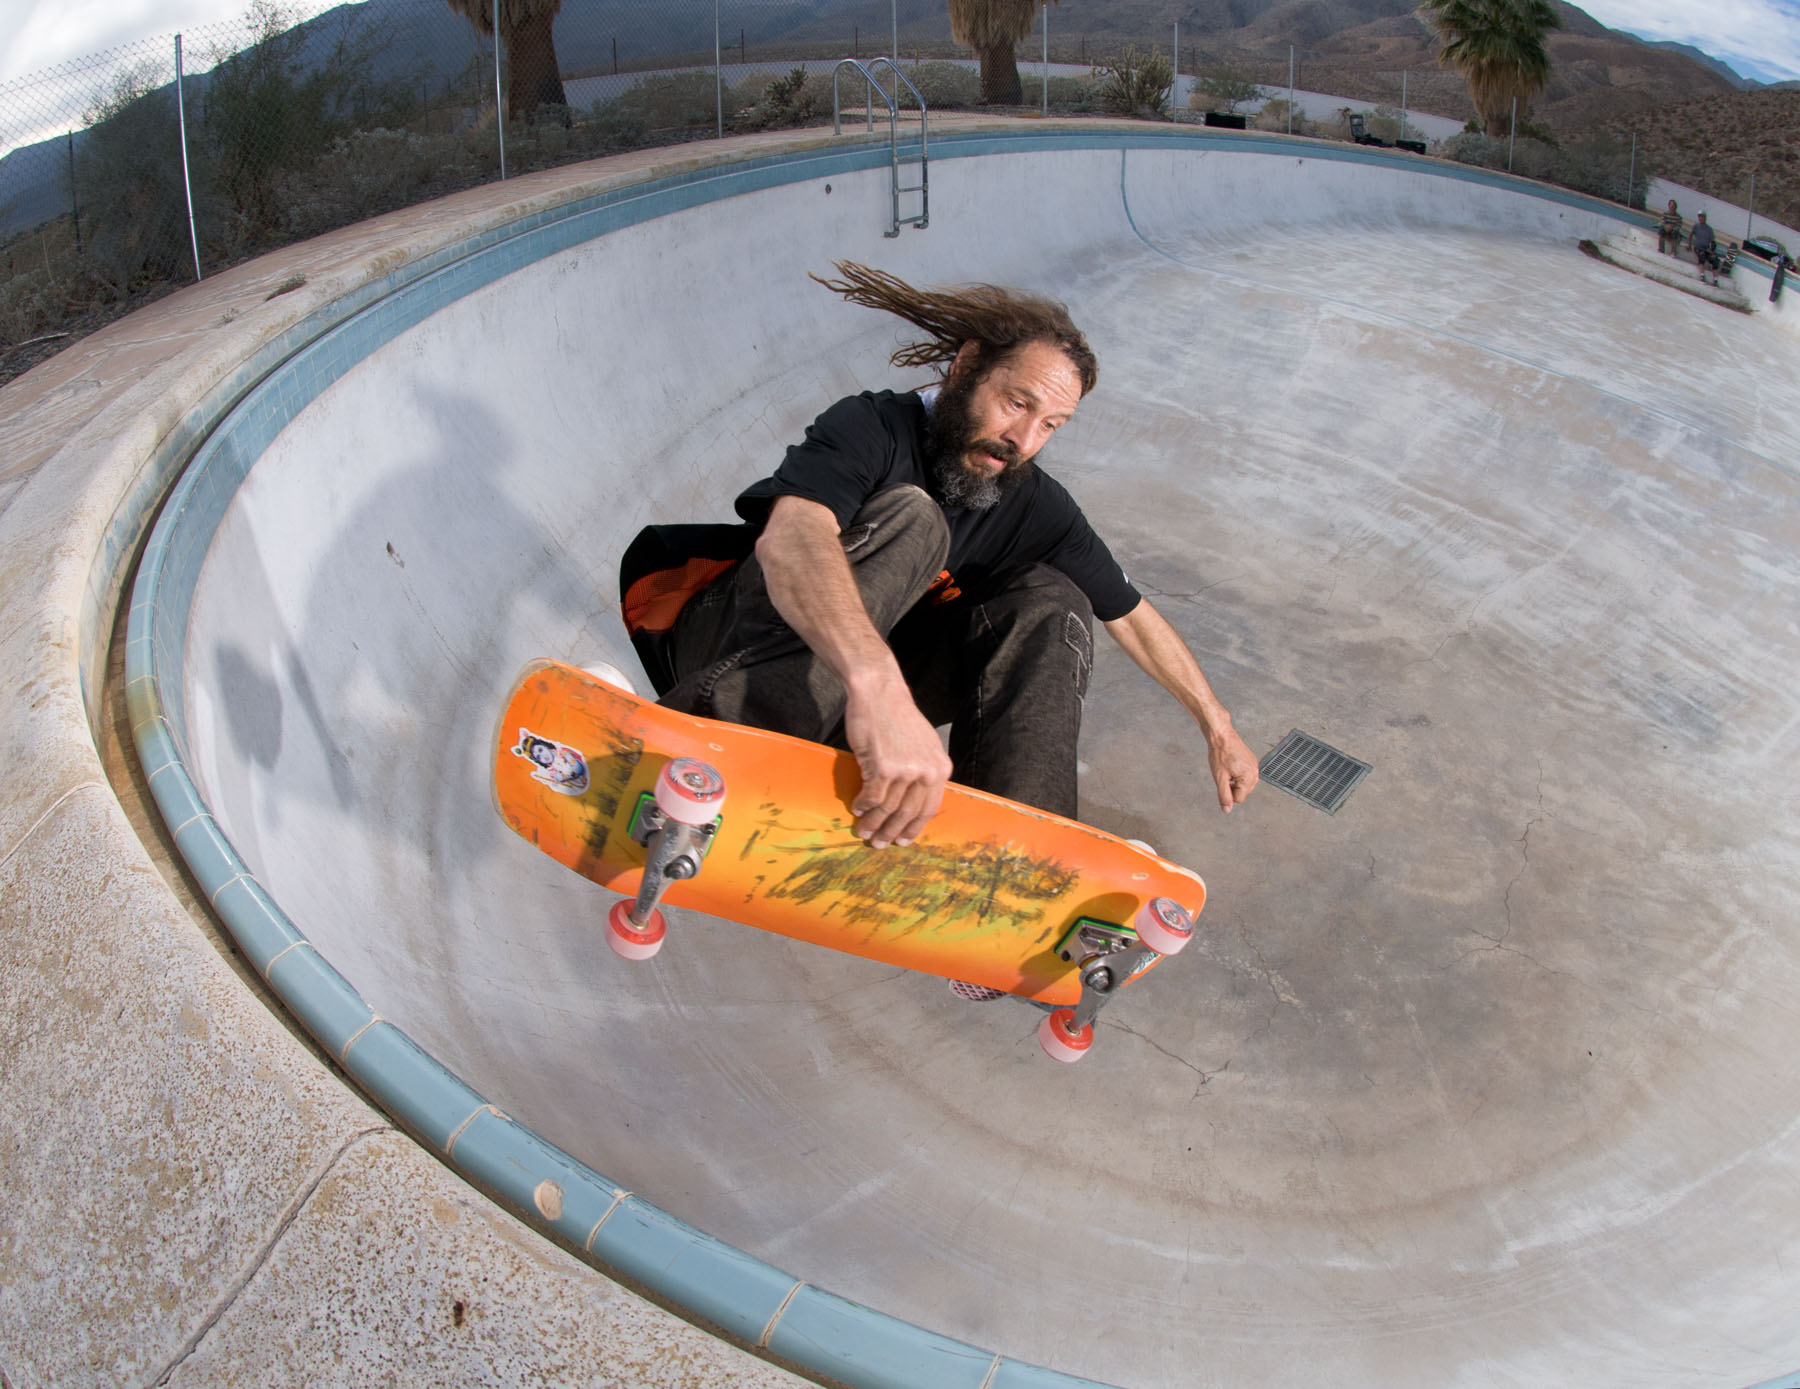 """Tony Alva pulls a frontside air out of the """"egg"""" in Borrego Springs.   (Photo by MRZ.)"""